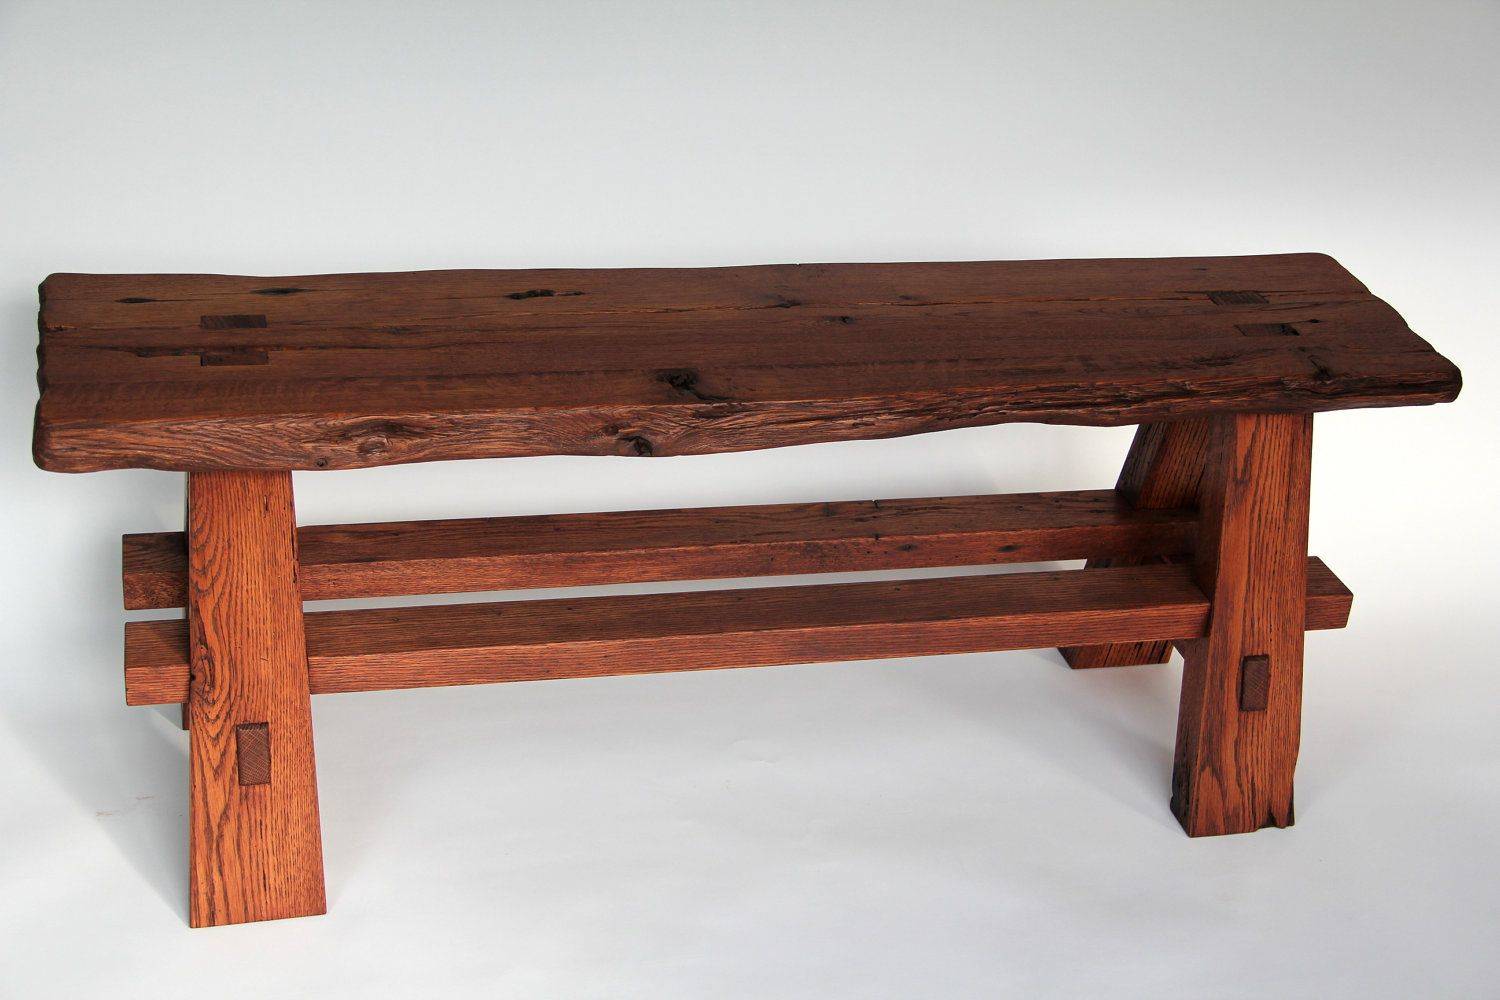 Rustic Reclaimed Barn Wood Bench Reclaimed Barn Wood Rustic Wood Bench Barn Wood